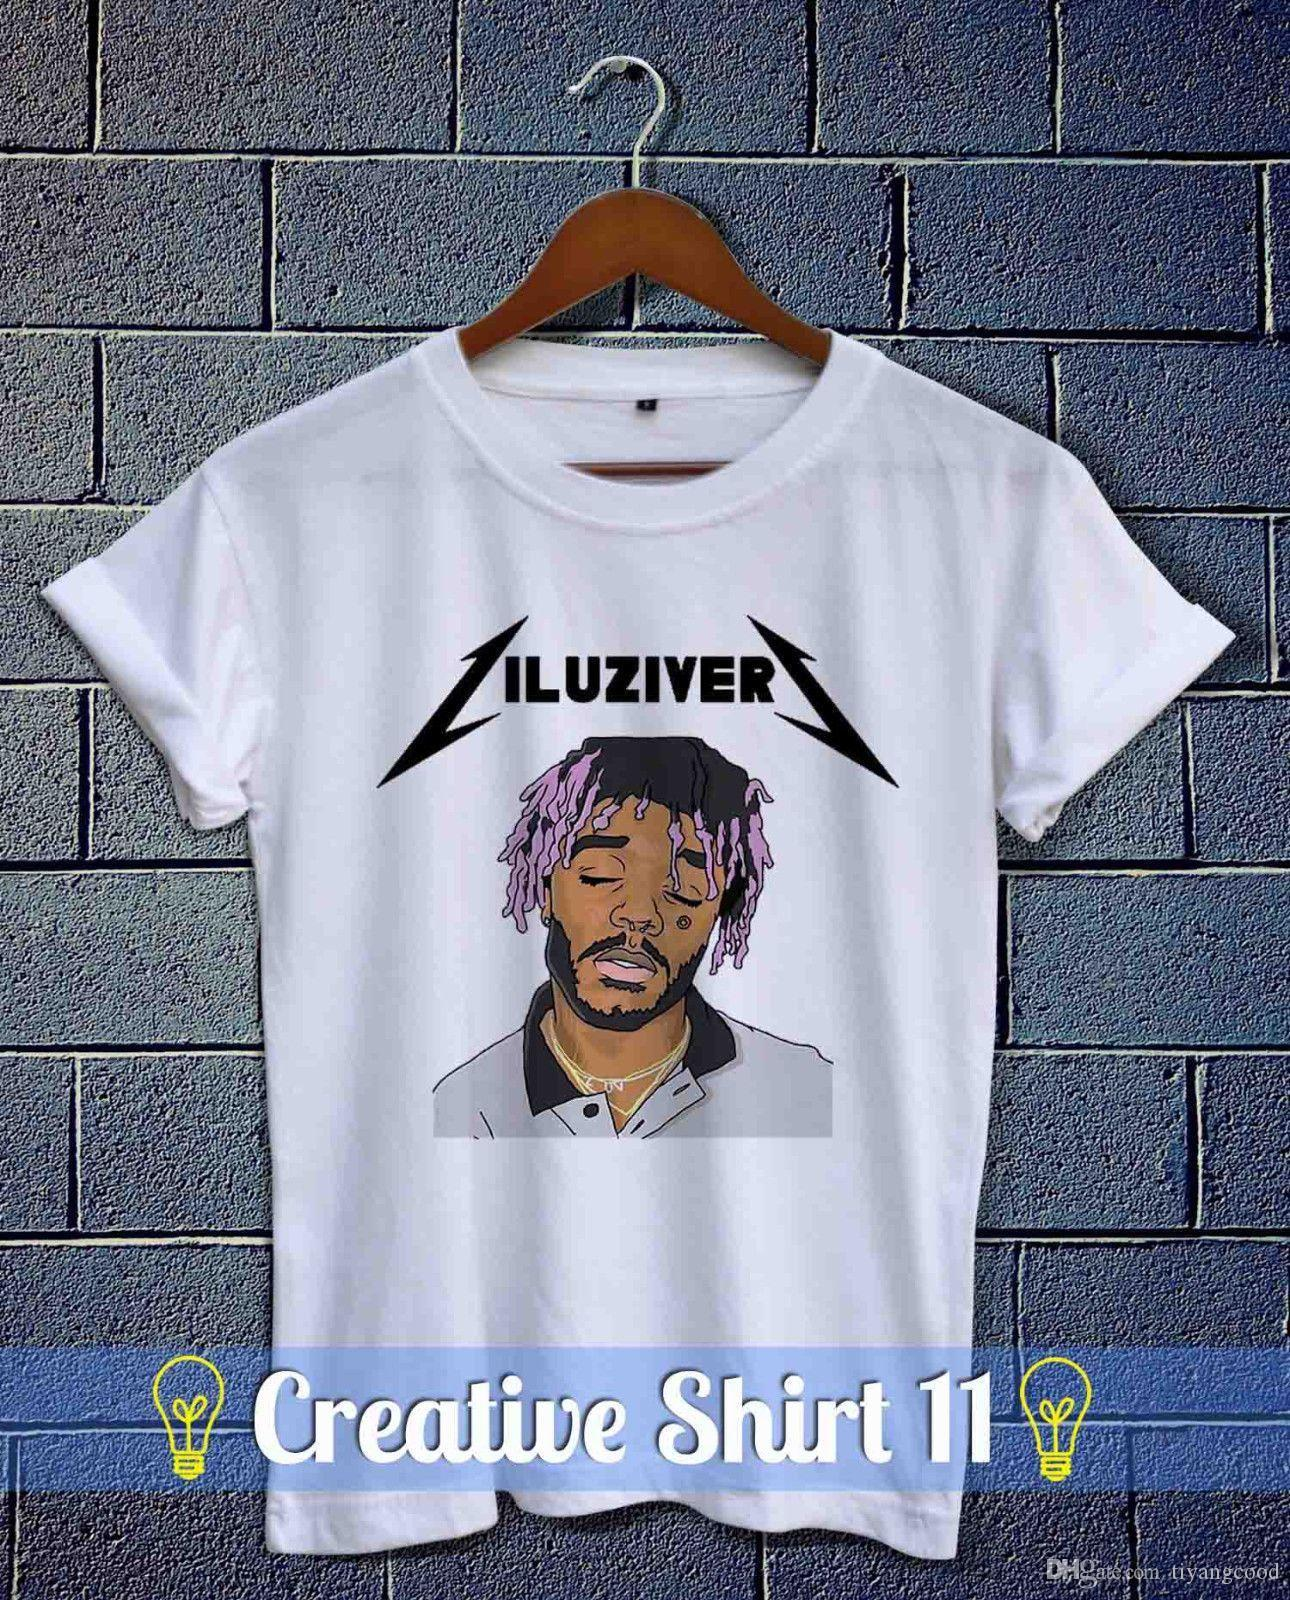 3100fb3a6 Kobe Bryant Black Mamba 24 LA Lakers Basketball T ShirtIluzifer XO TOUR  Llif3 Lil Uzi Vert T Shirt Tee S It T Shirts From Tiyangcood